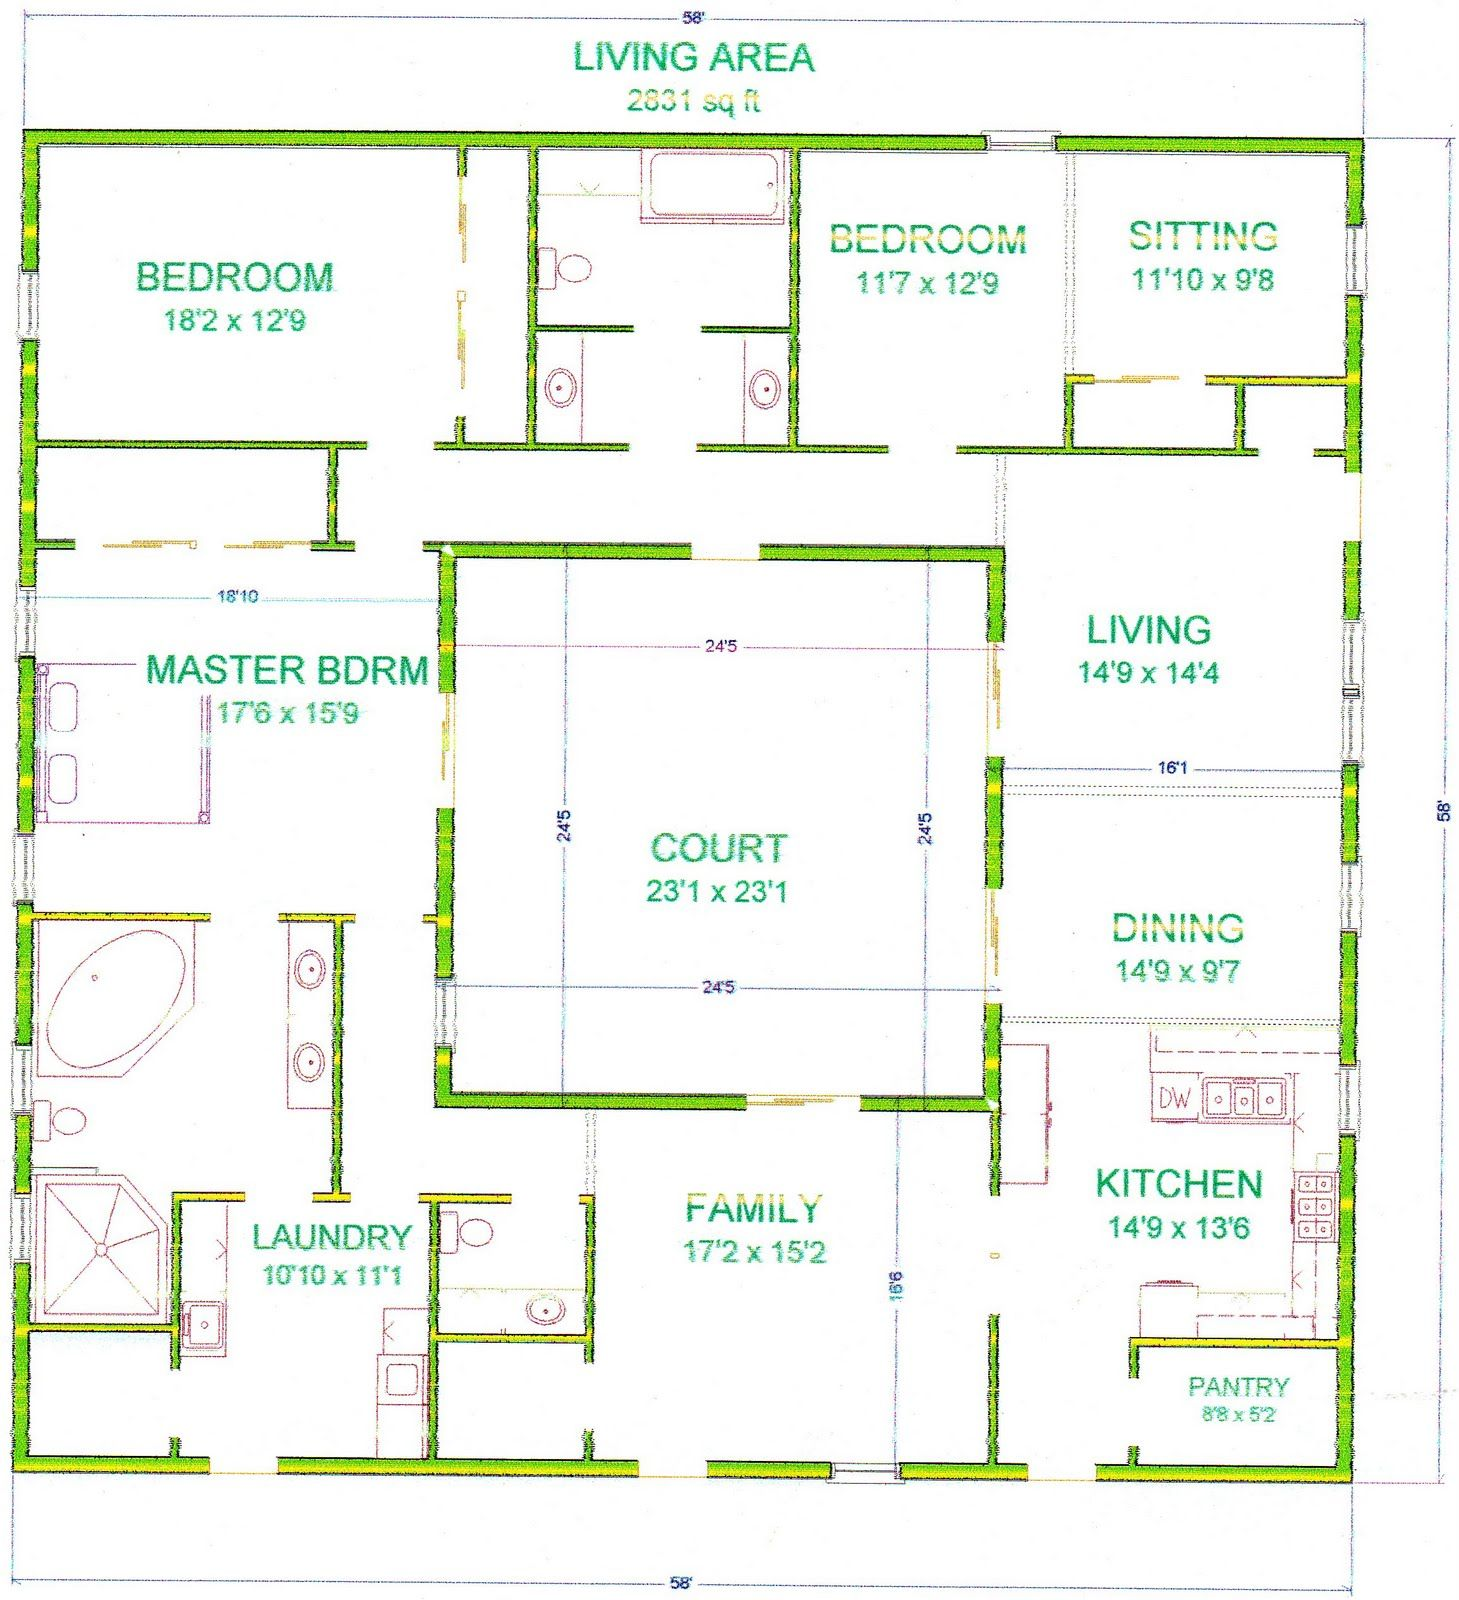 Center courtyard house plans with 2831 square feet this for Square house plans